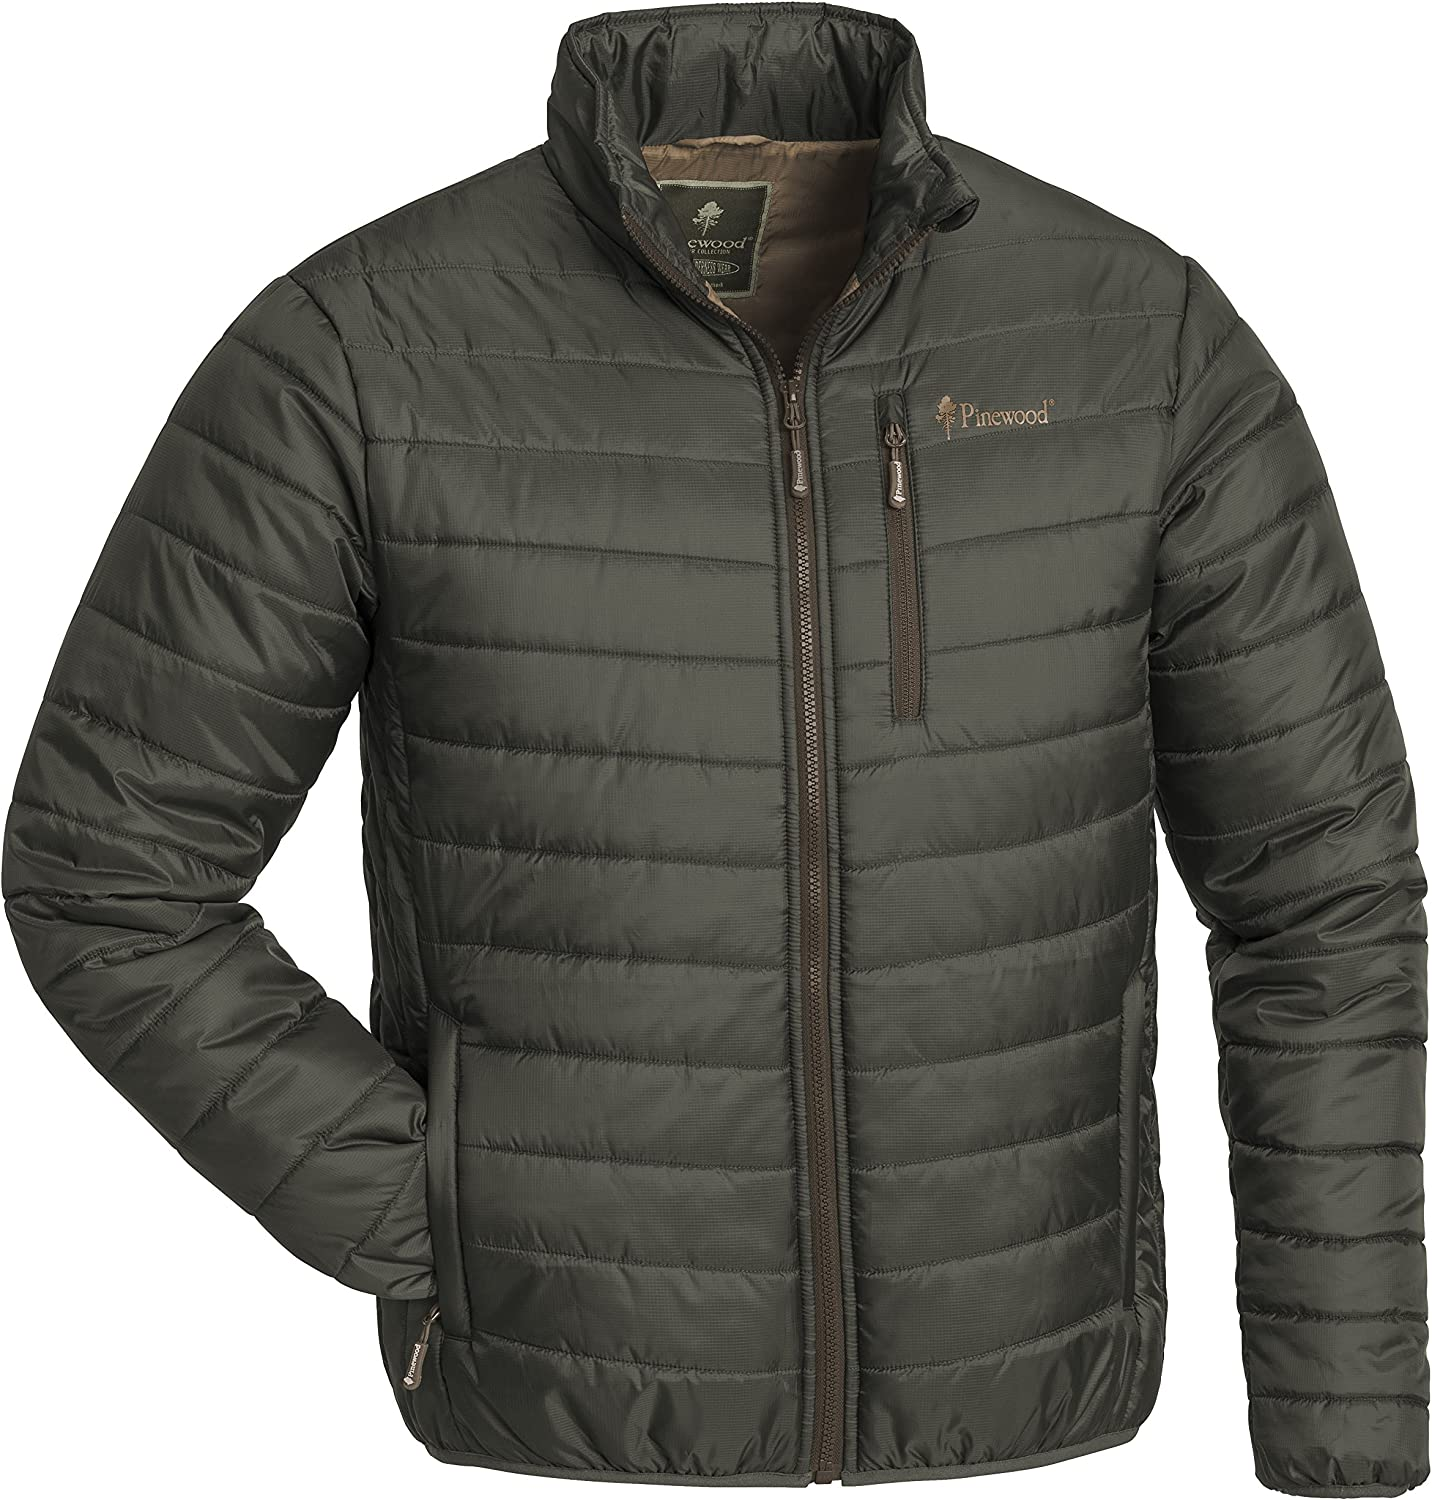 Pinewood Men's Himalaya Padded Jacke Jacket